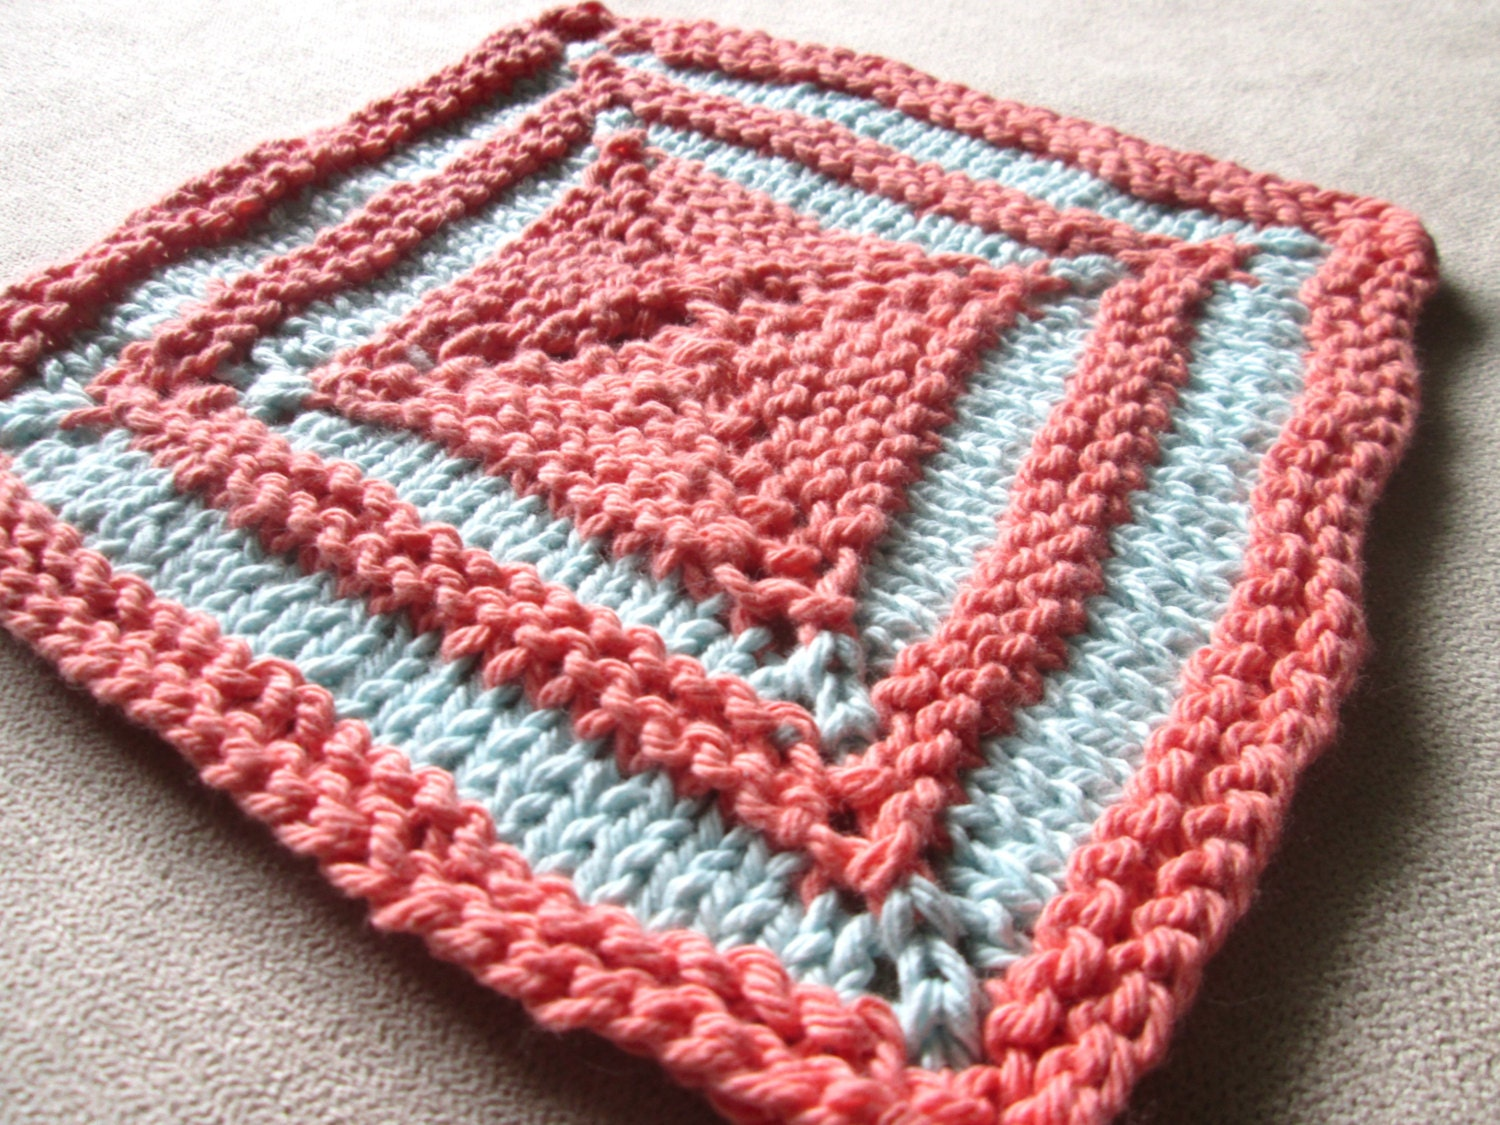 Knit Dishcloth Patterns Two Colors : Square Two Color Dishcloth Knitting Pattern Knit Washcloth